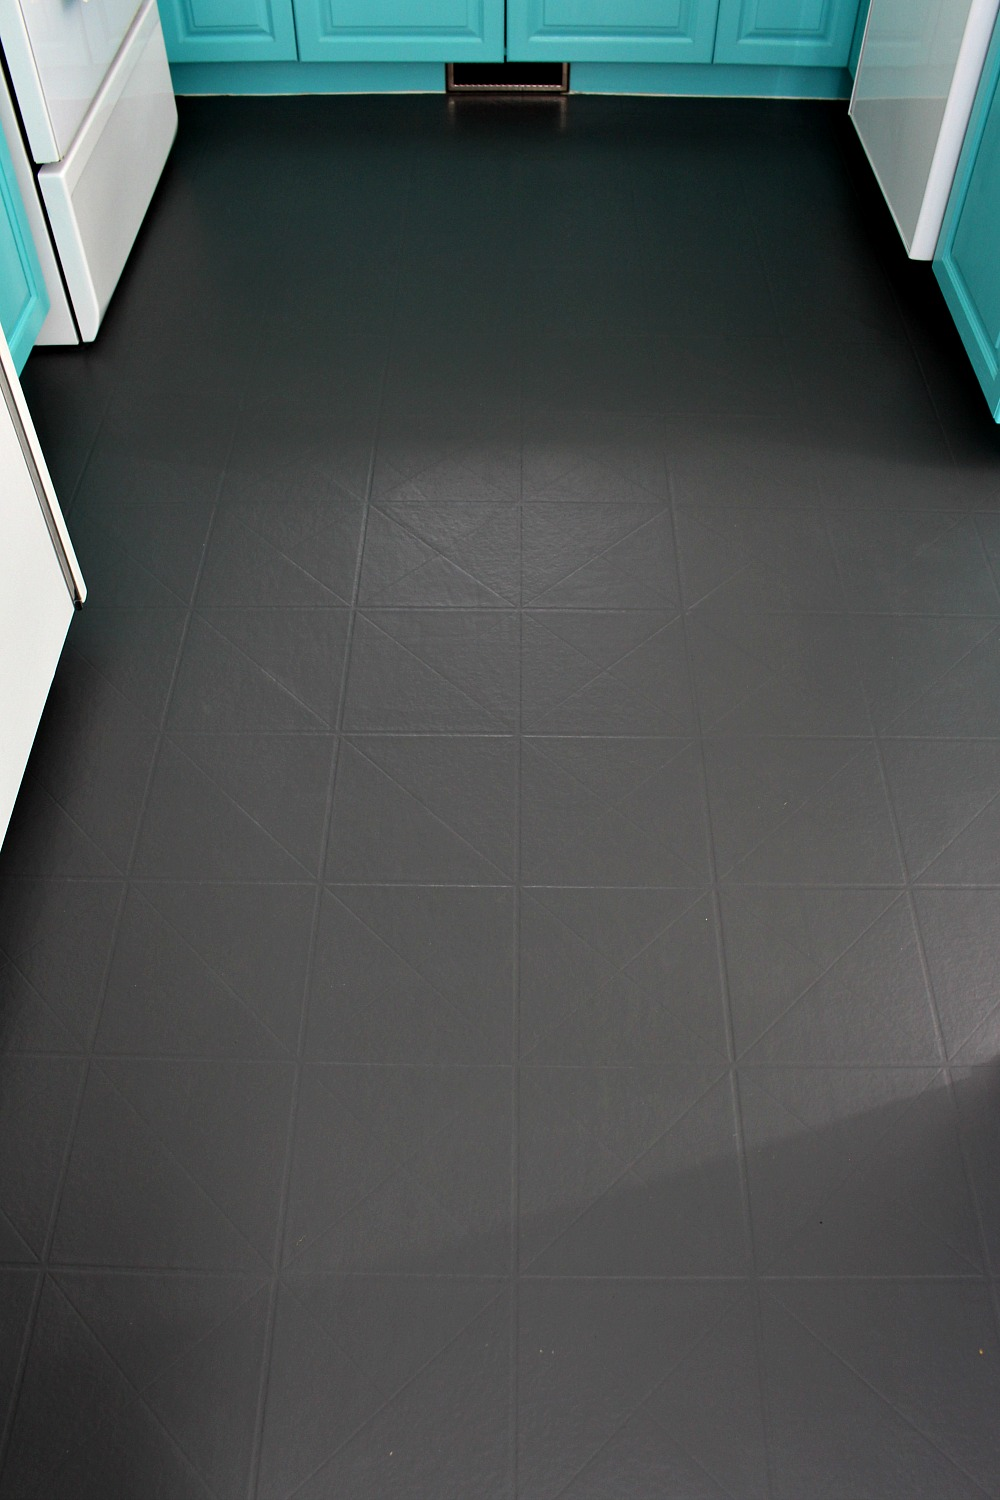 How to paint a vinyl floor diy painted floors dans le lakehouse black painted kitchen floor dailygadgetfo Gallery